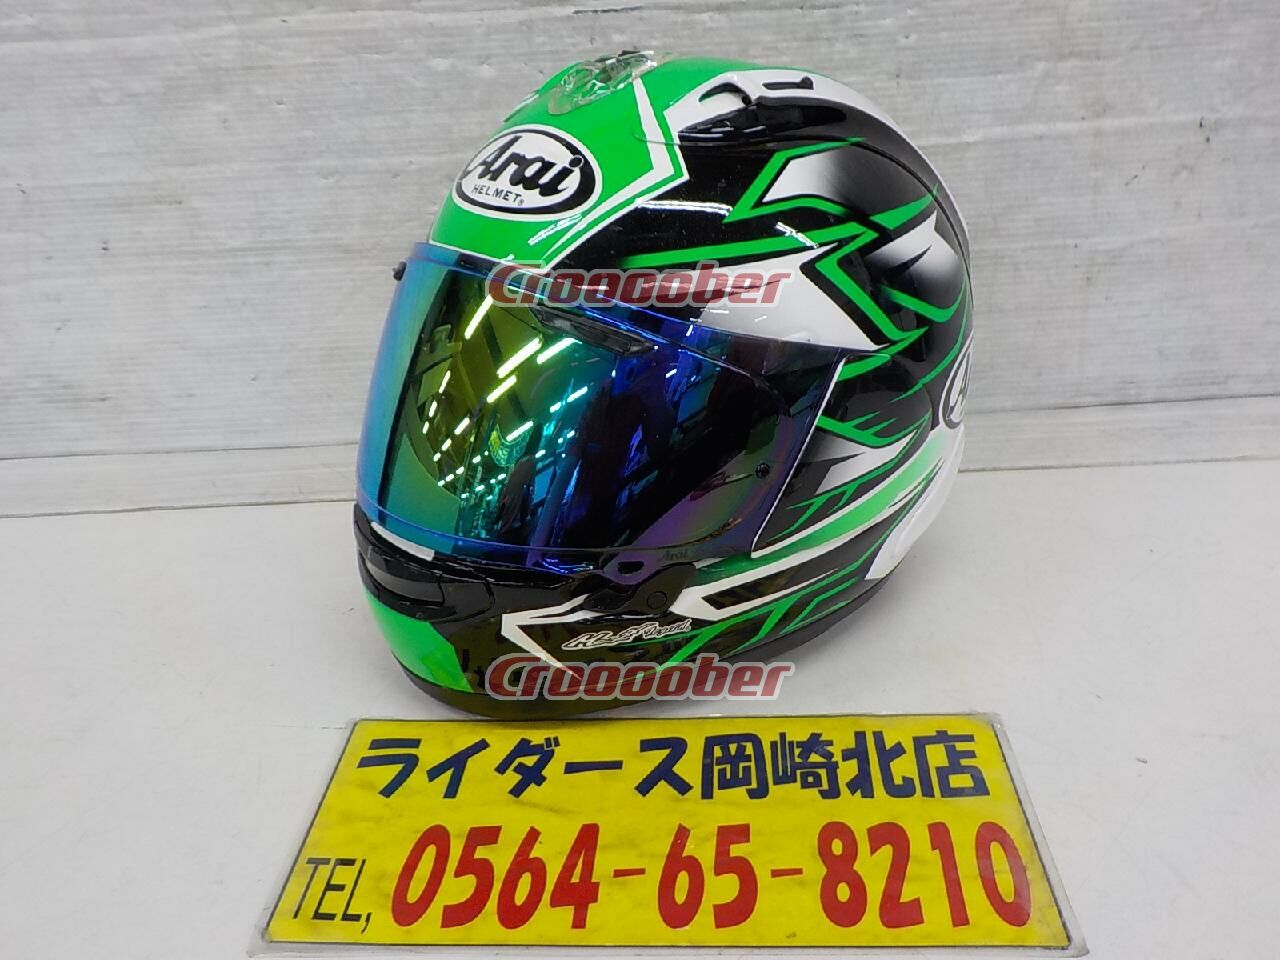 93285d51 Arai RX-7X Ghost Full-face Helmet With Mirror Shield! Size: XL / 61 - 62 Cm